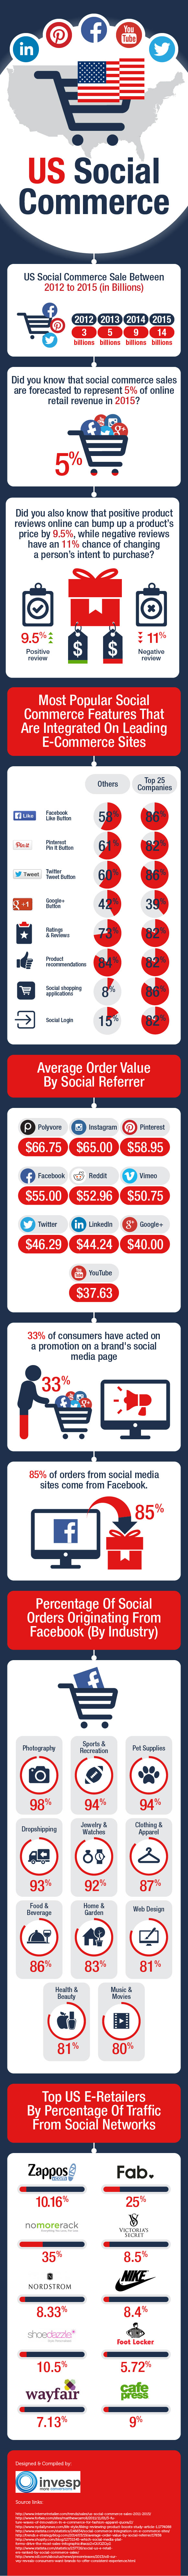 United States Social Commerece [infographic]